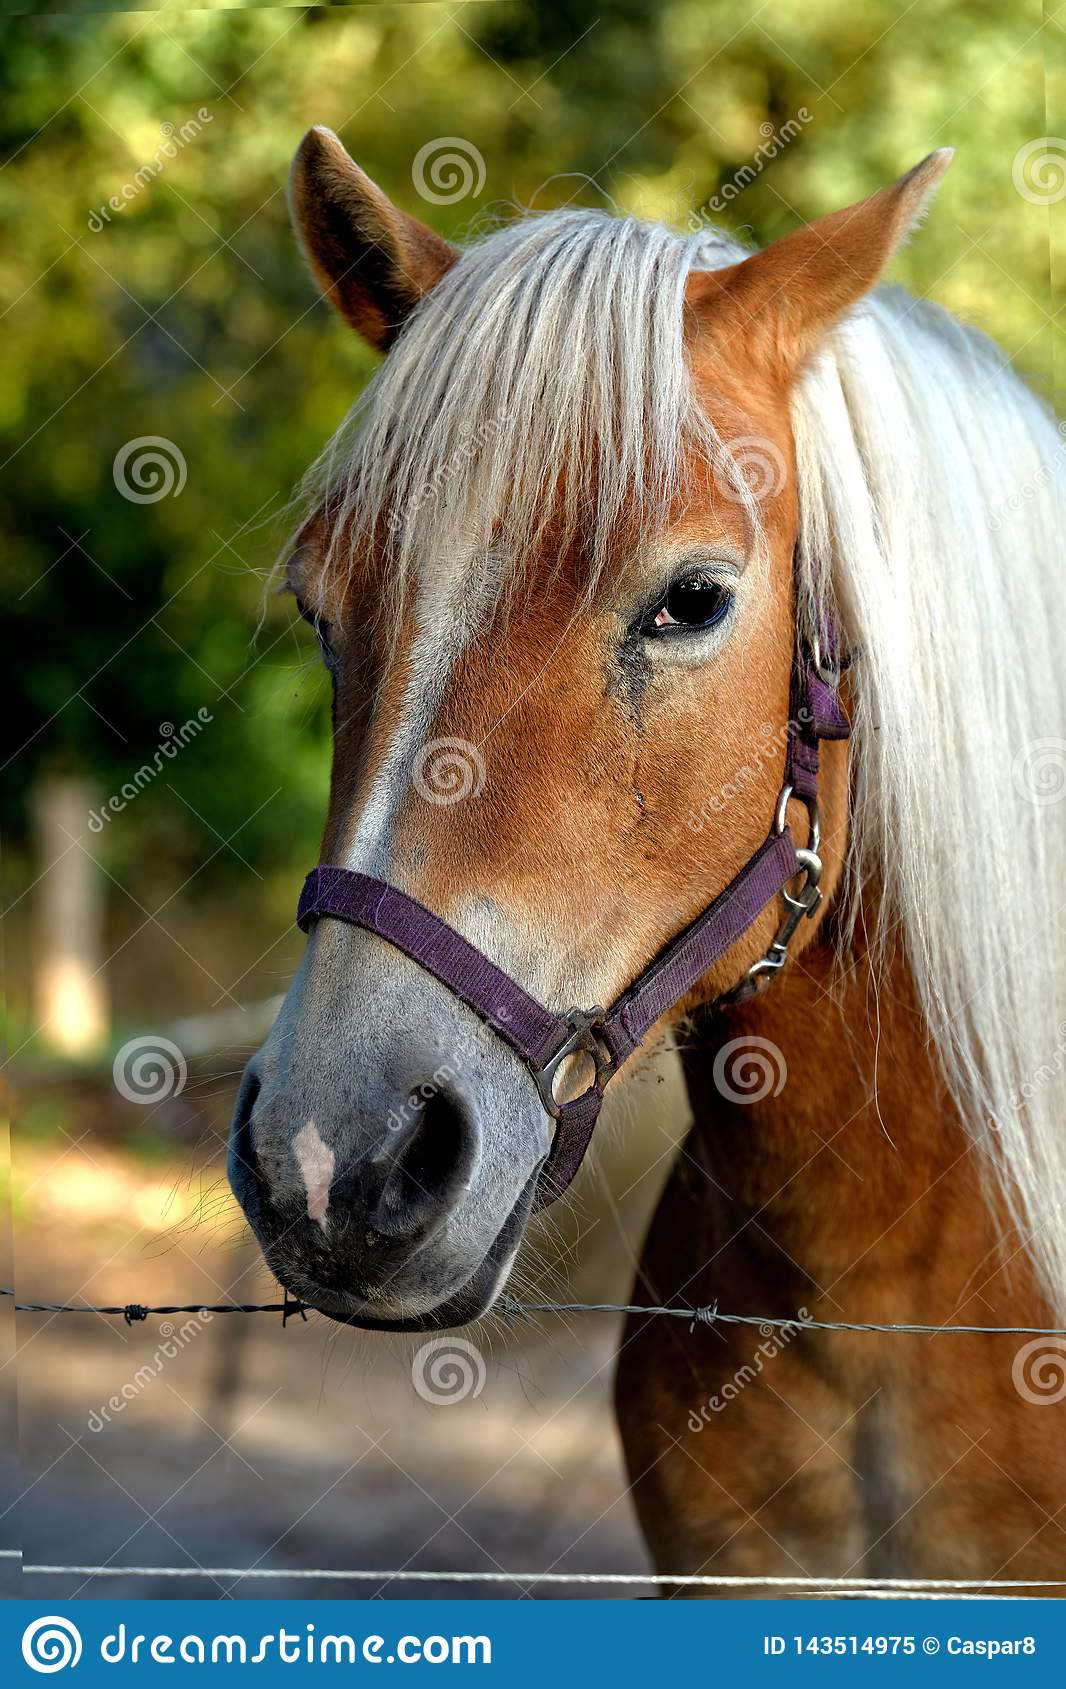 A Portrait Of A Friendly Light Brown Horse In An Enclosure